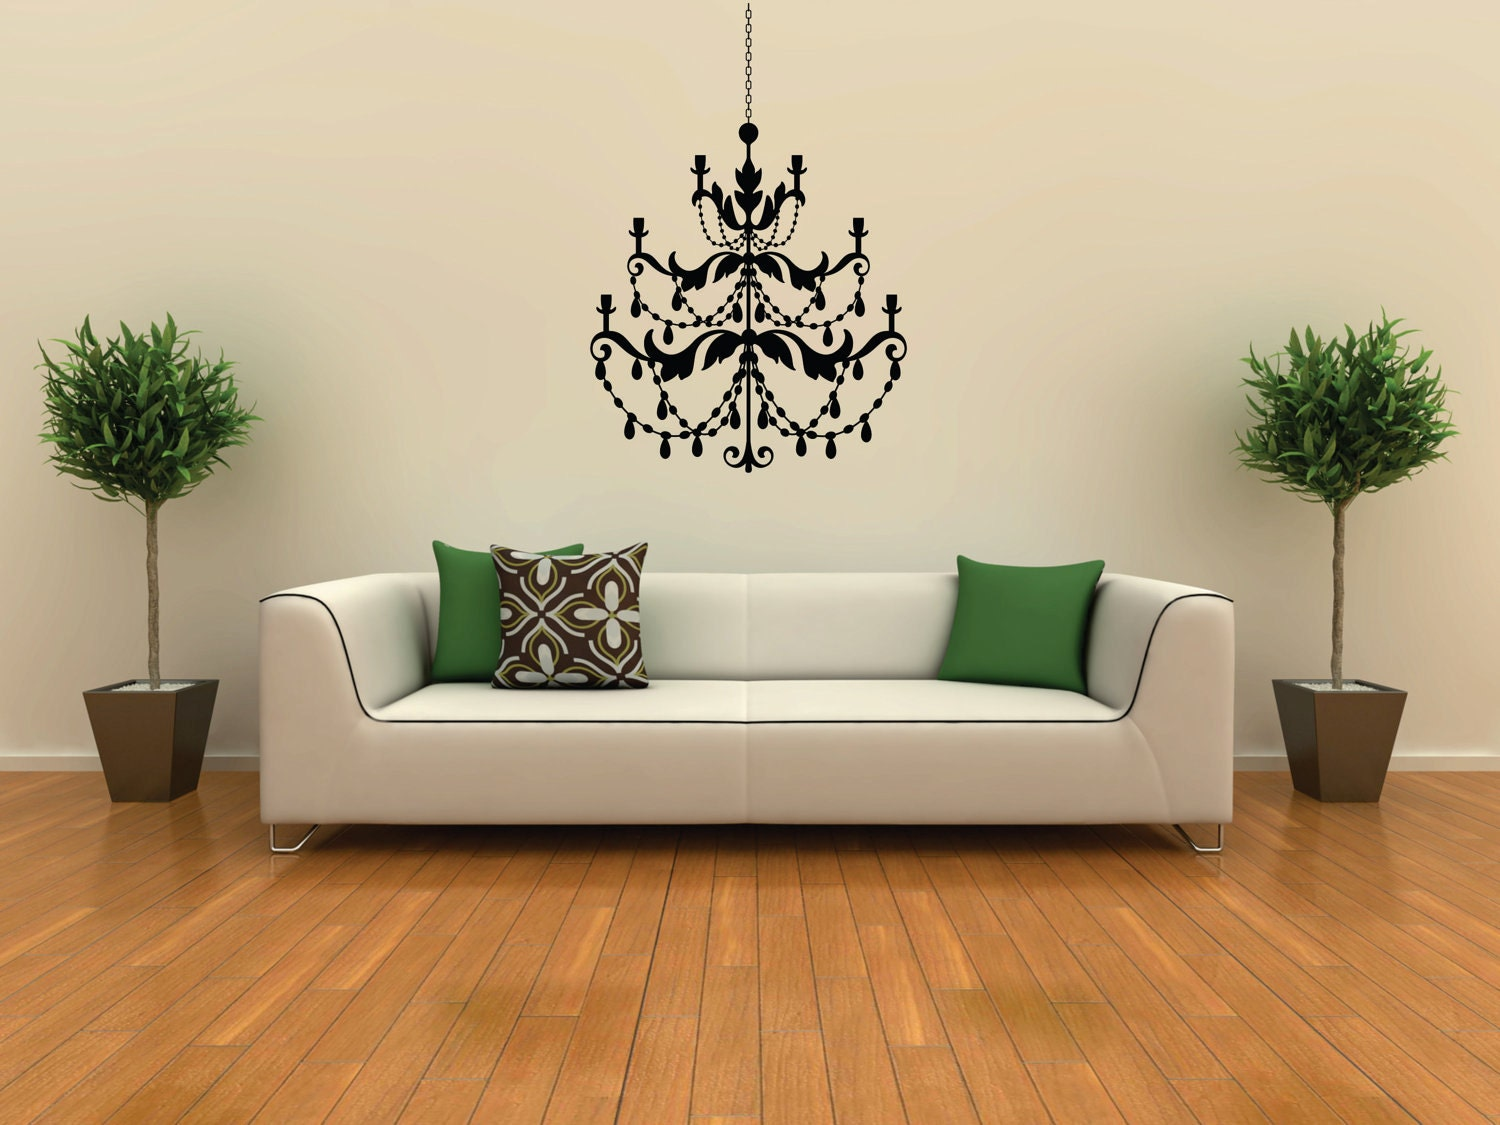 Large chandelier vinyl removable wall decal free shipping zoom aloadofball Gallery